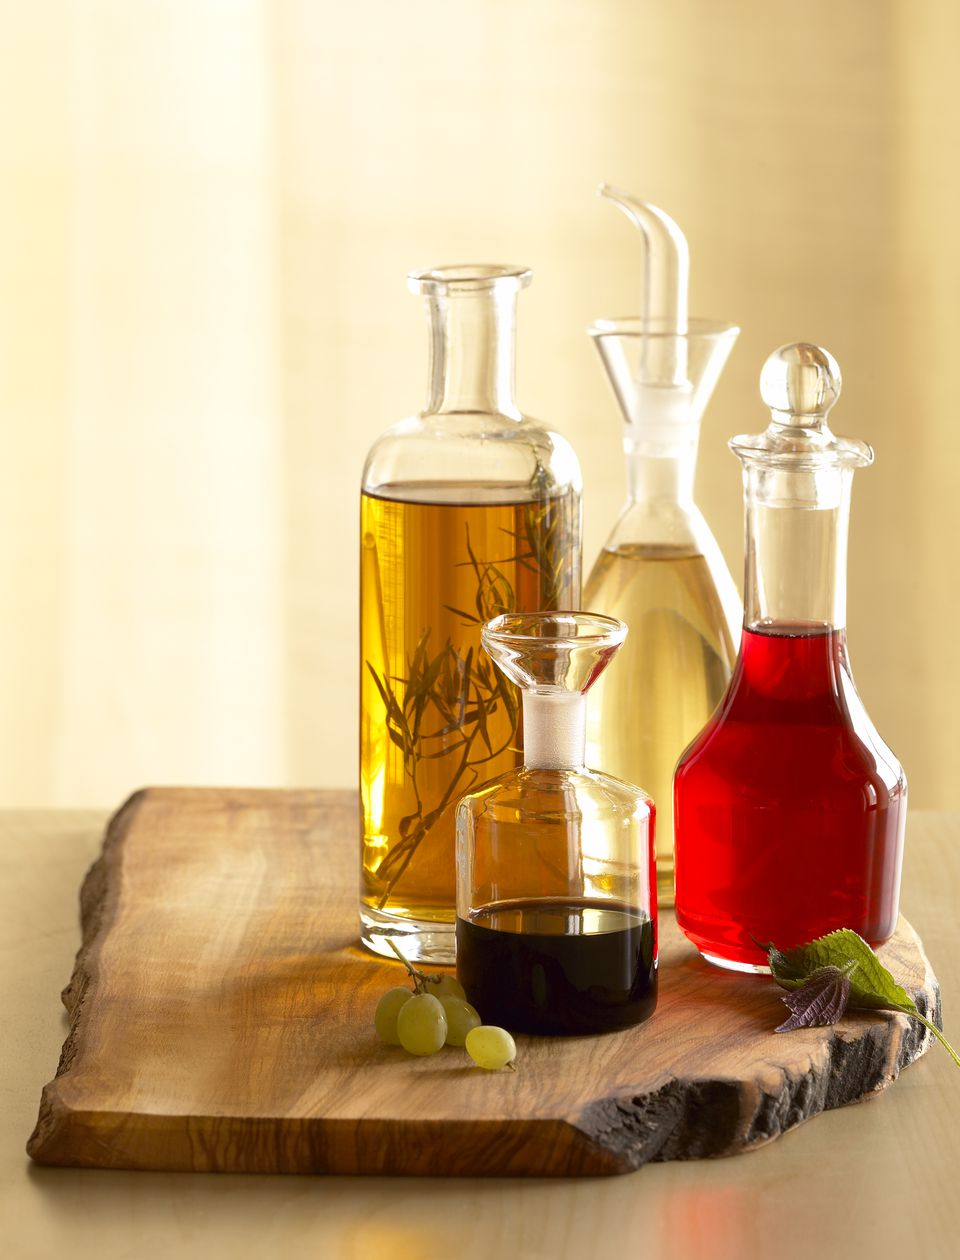 Assorted vinegar bottles